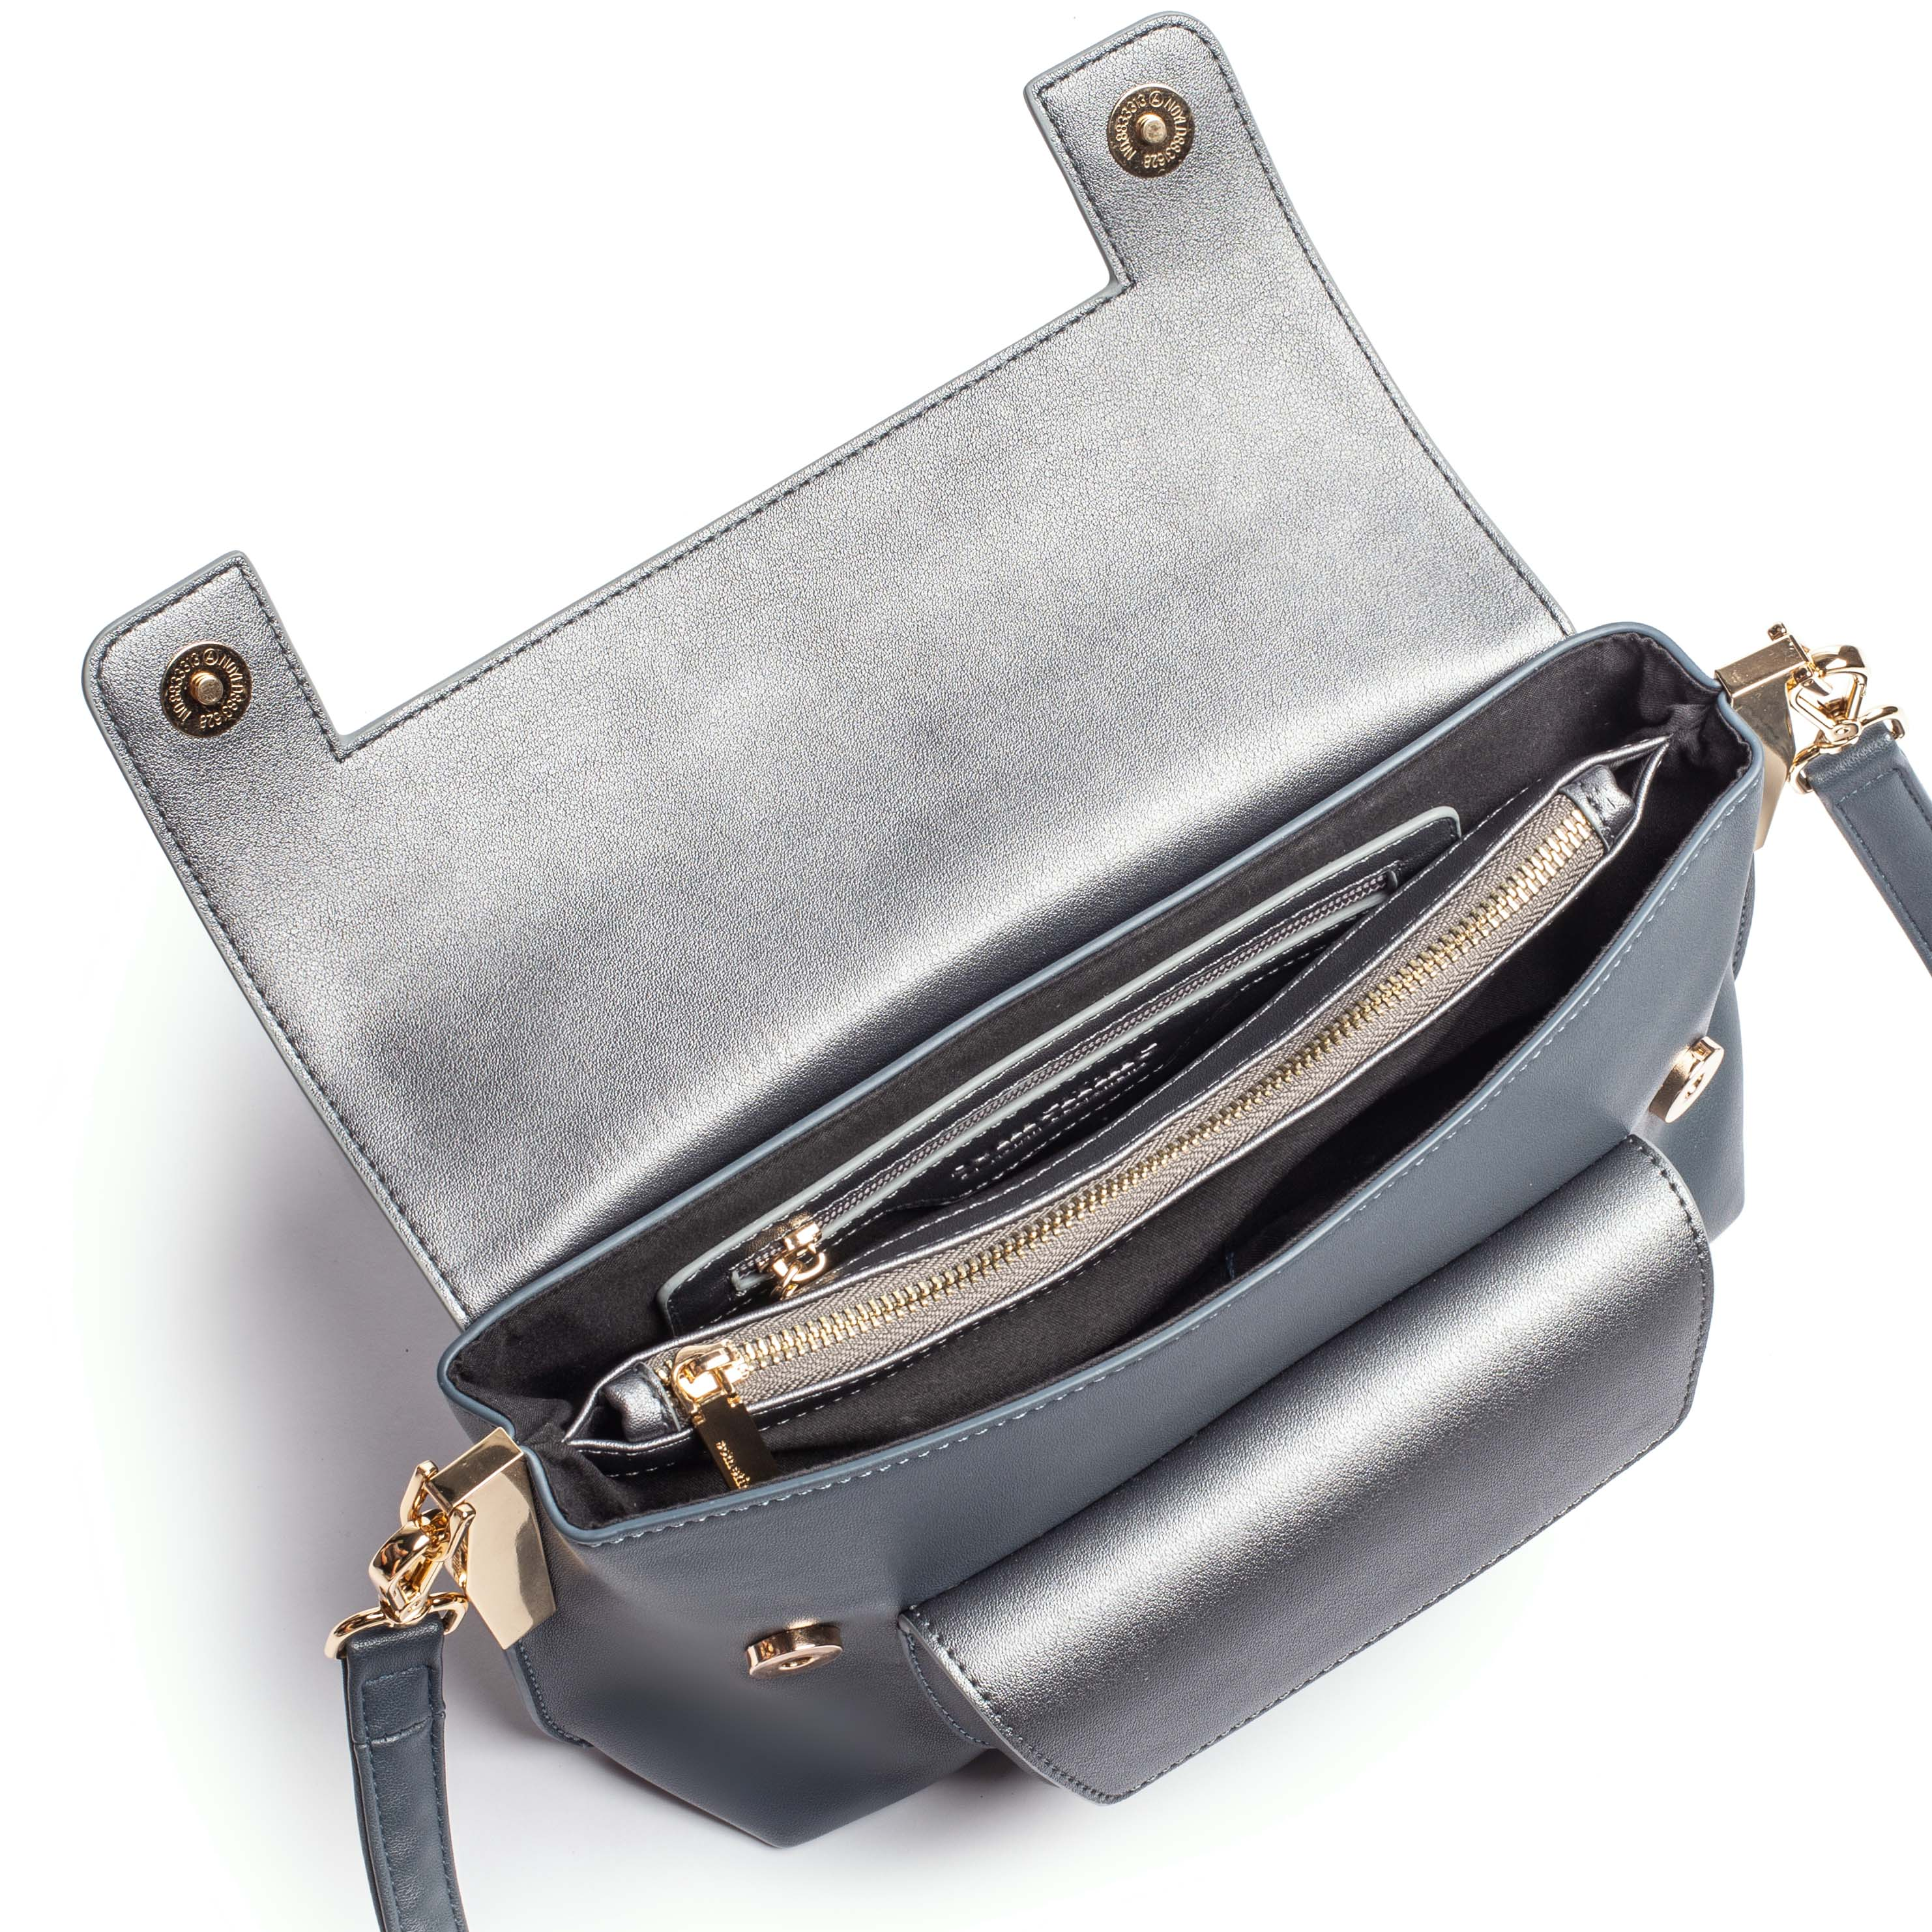 LOFARBAG 2 SIGNATURE - METALLIC BLUE